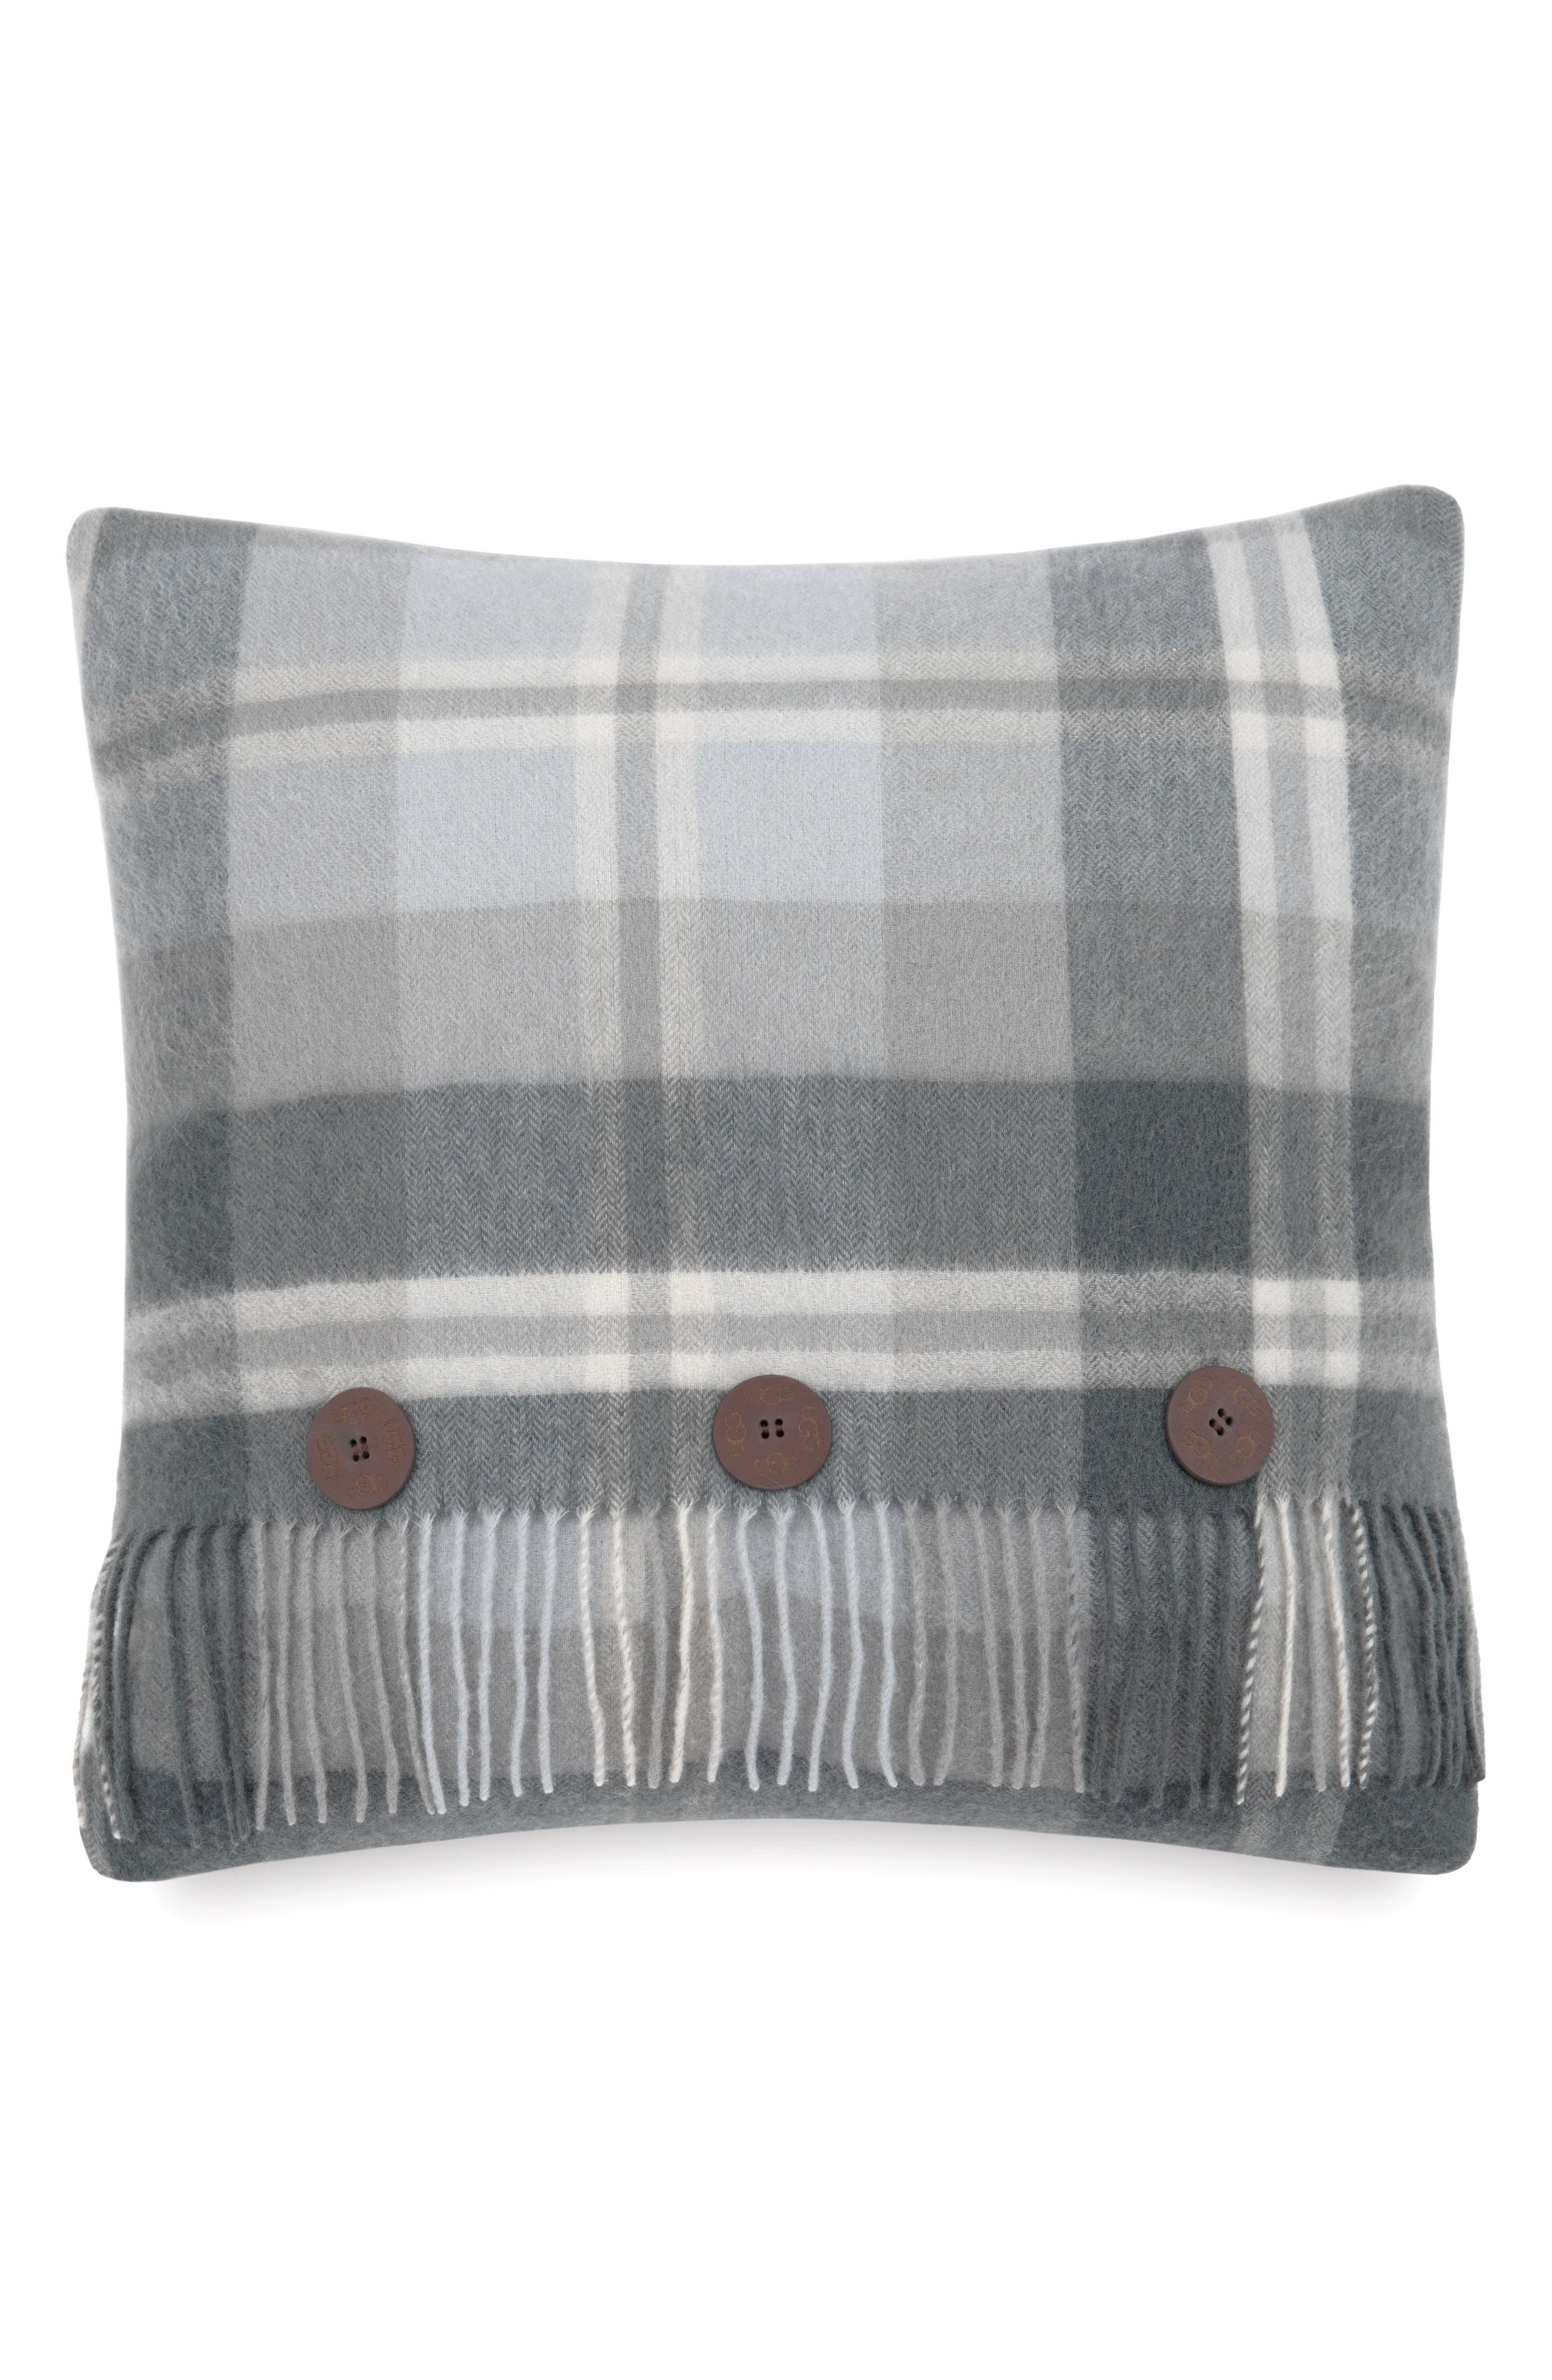 Glacier Plaid Pillow,                         Main,                         color, Grey Multi